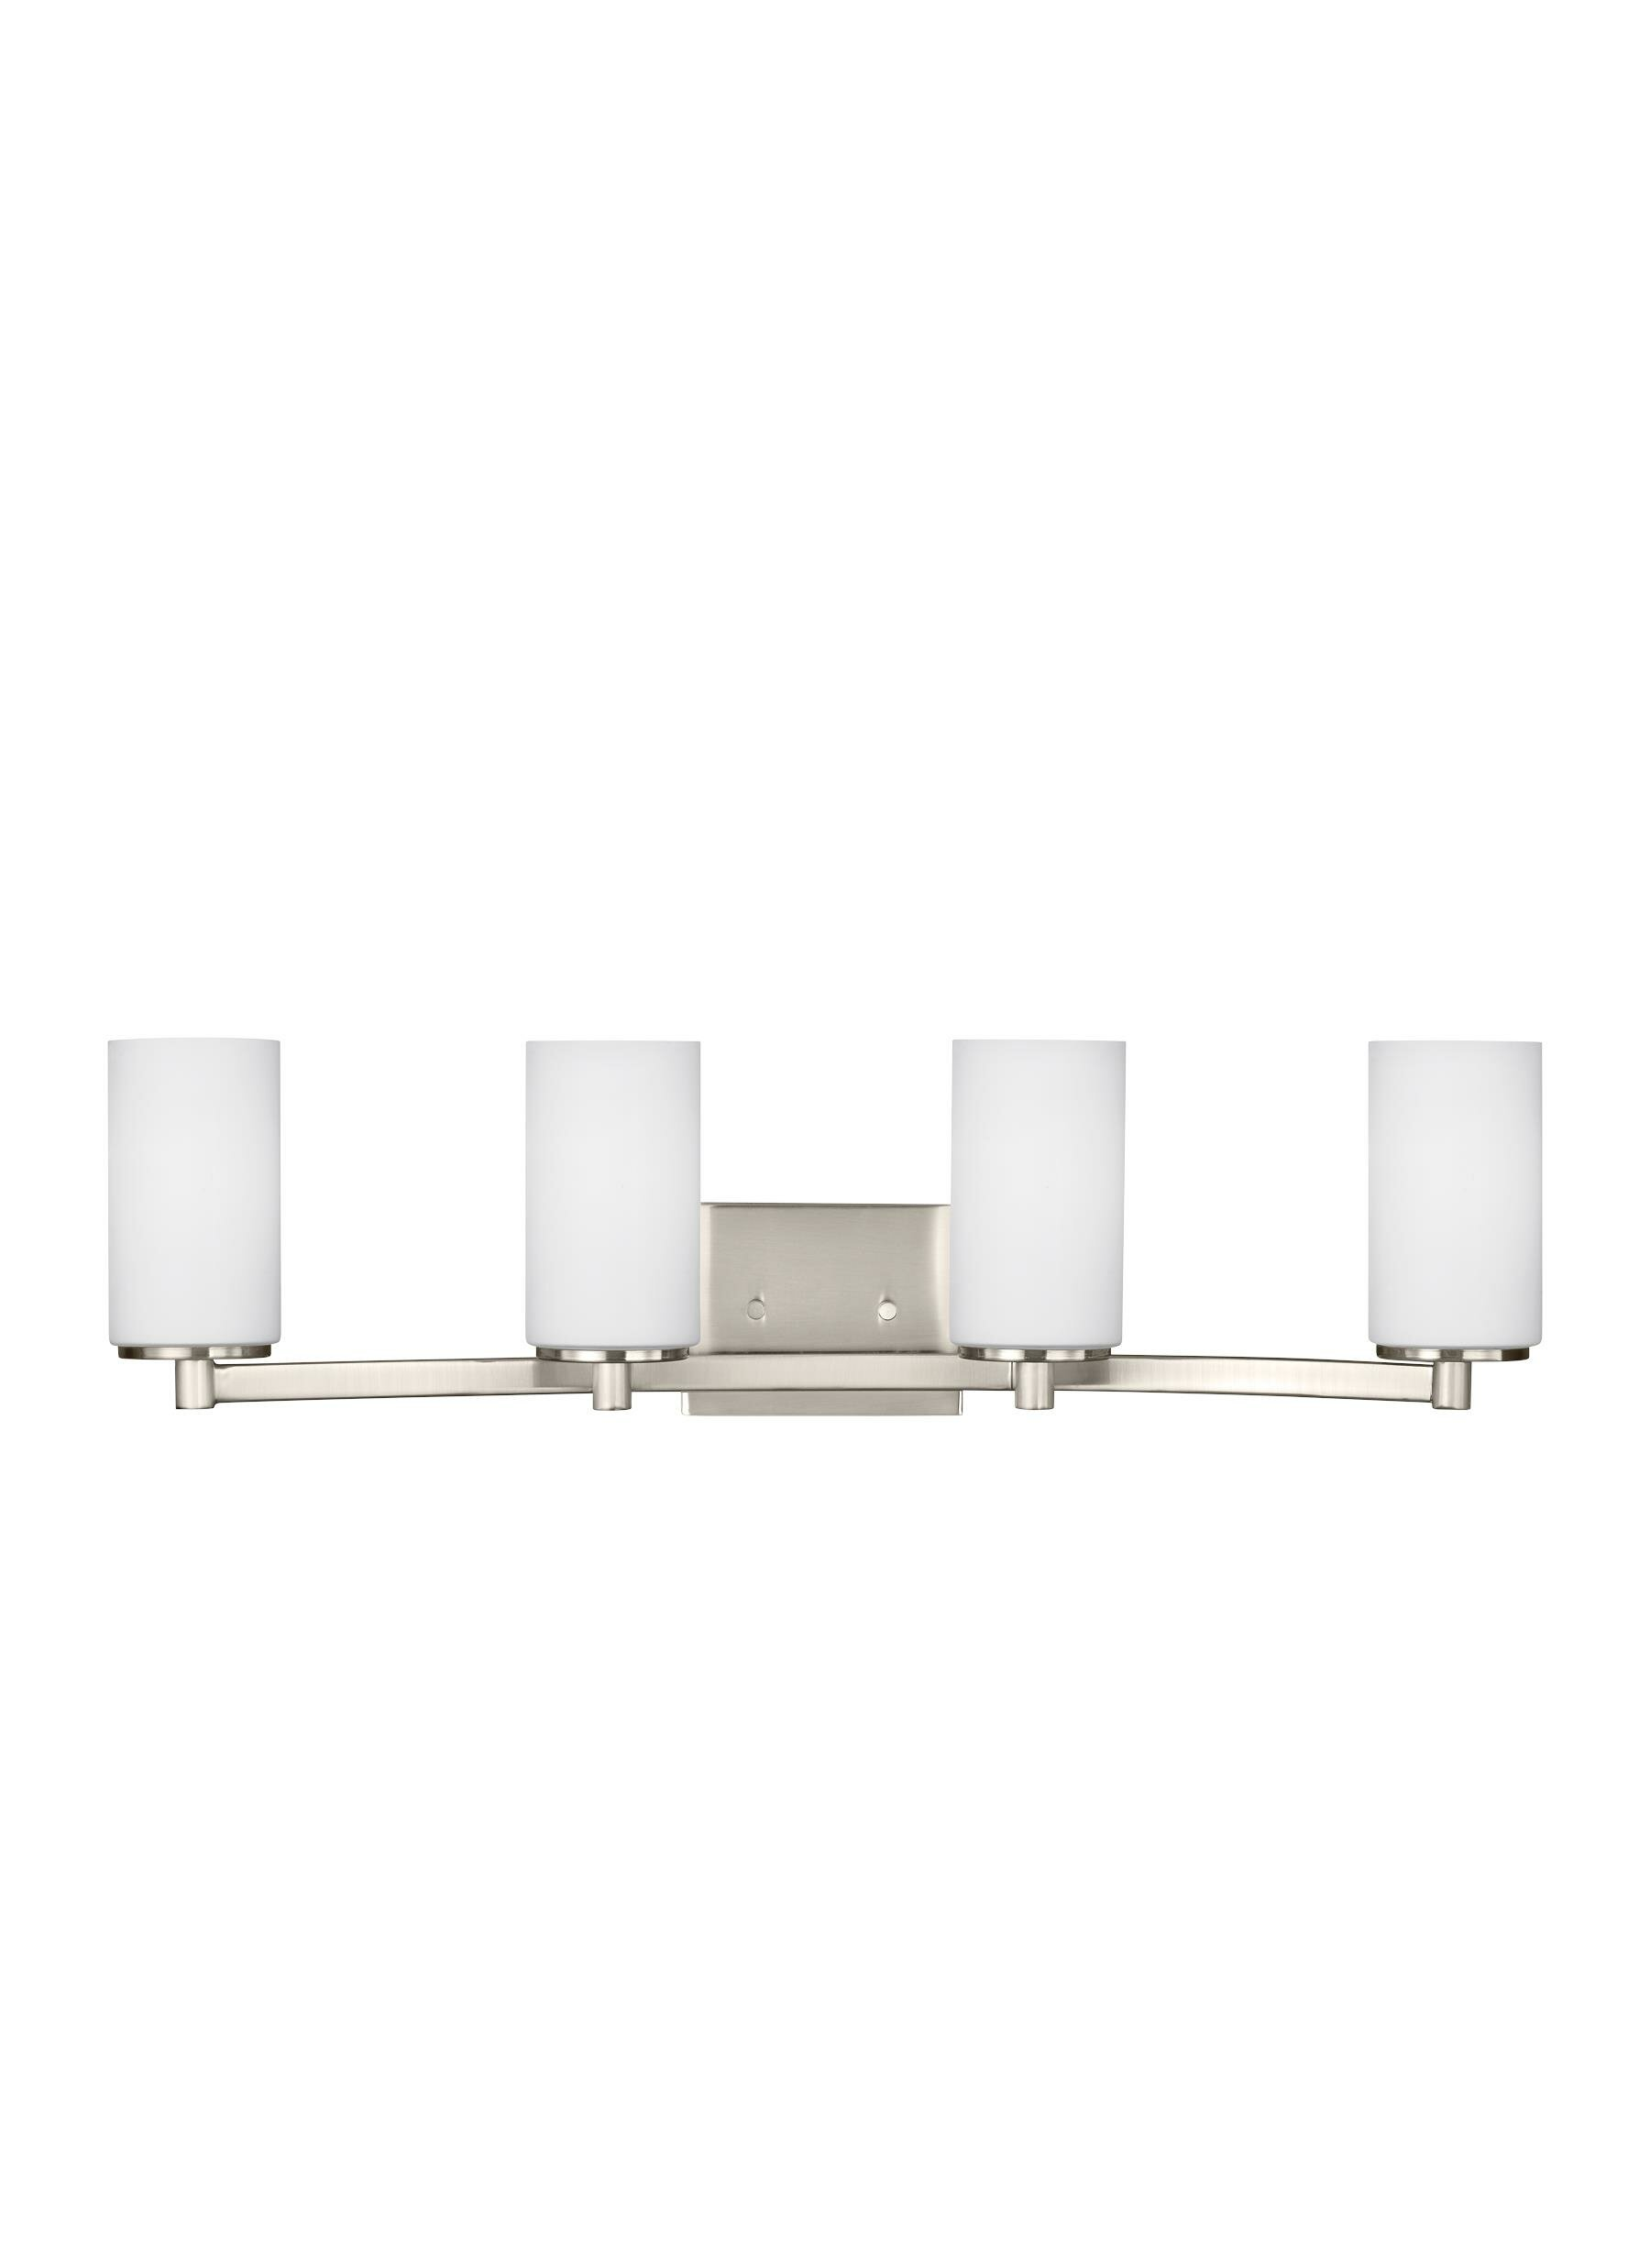 Darby Home Co Burnley 4 Light Dimmable Vanity Light Reviews Wayfair